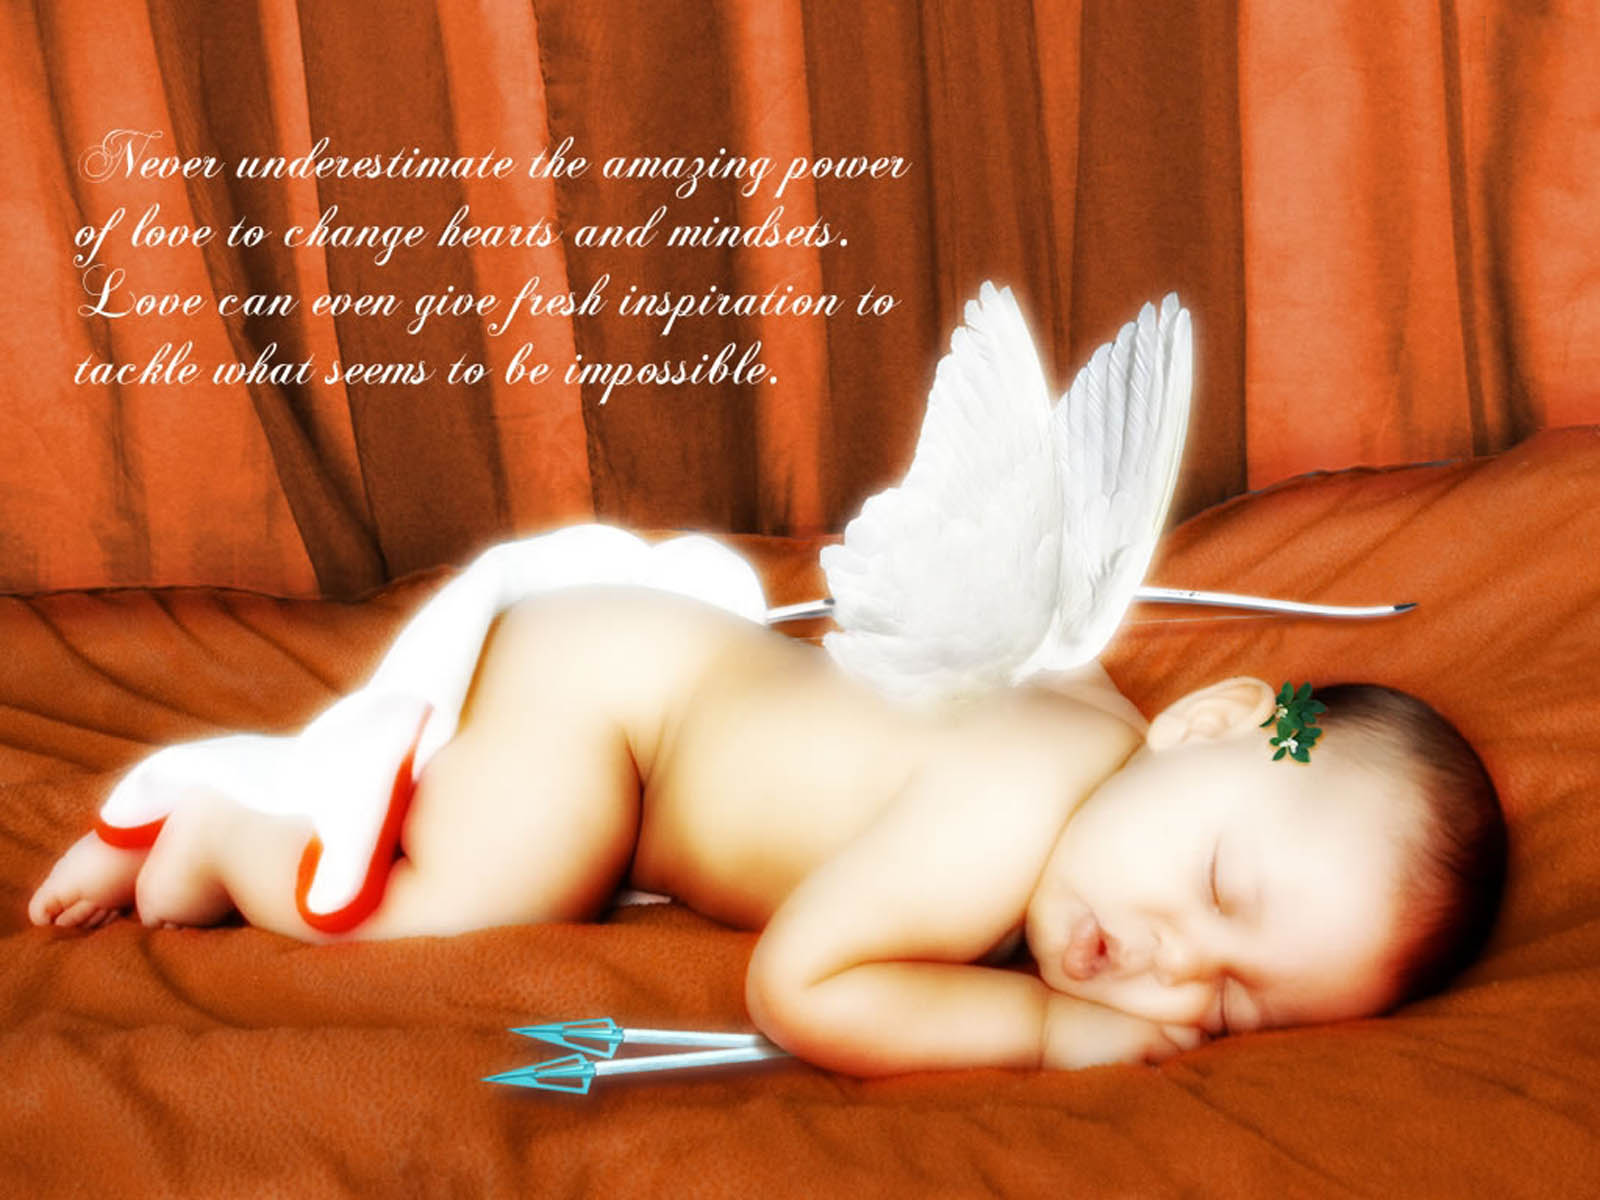 Tag Angel Babies Wallpapers BackgroundsPhotos Images and Pictures 1600x1200